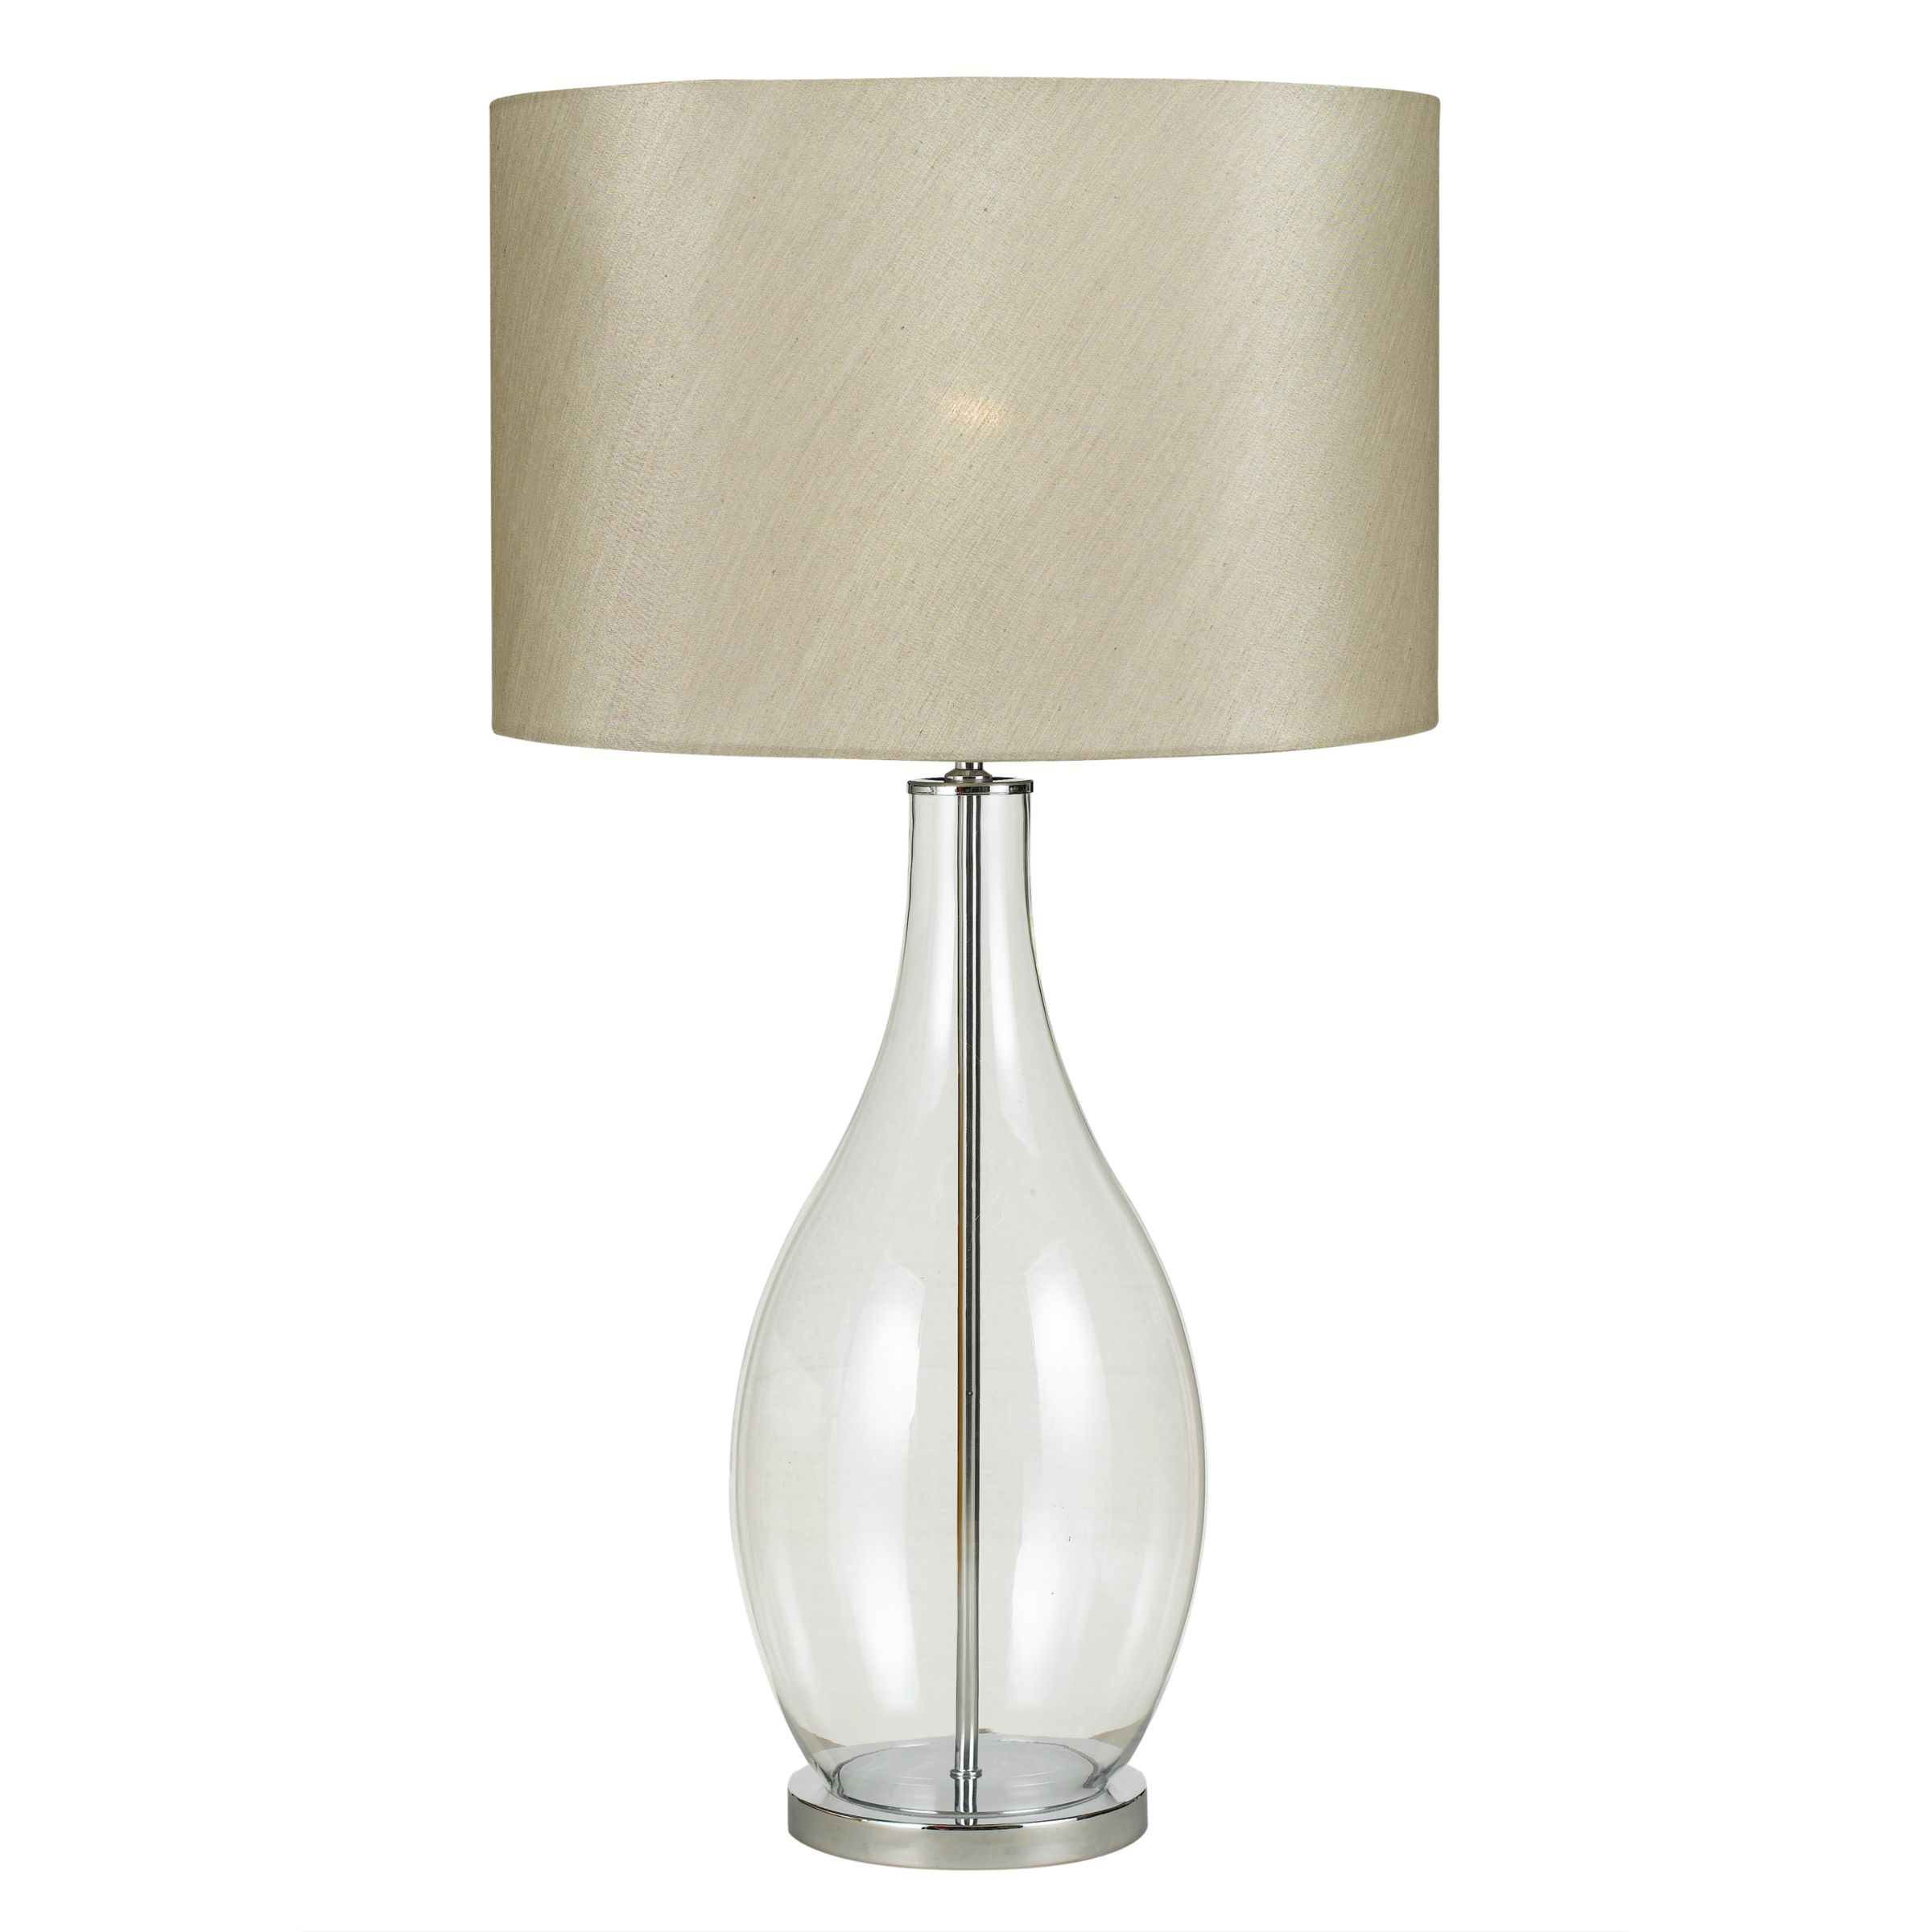 john lewis gina table lamp clear glass review compare prices buy. Black Bedroom Furniture Sets. Home Design Ideas